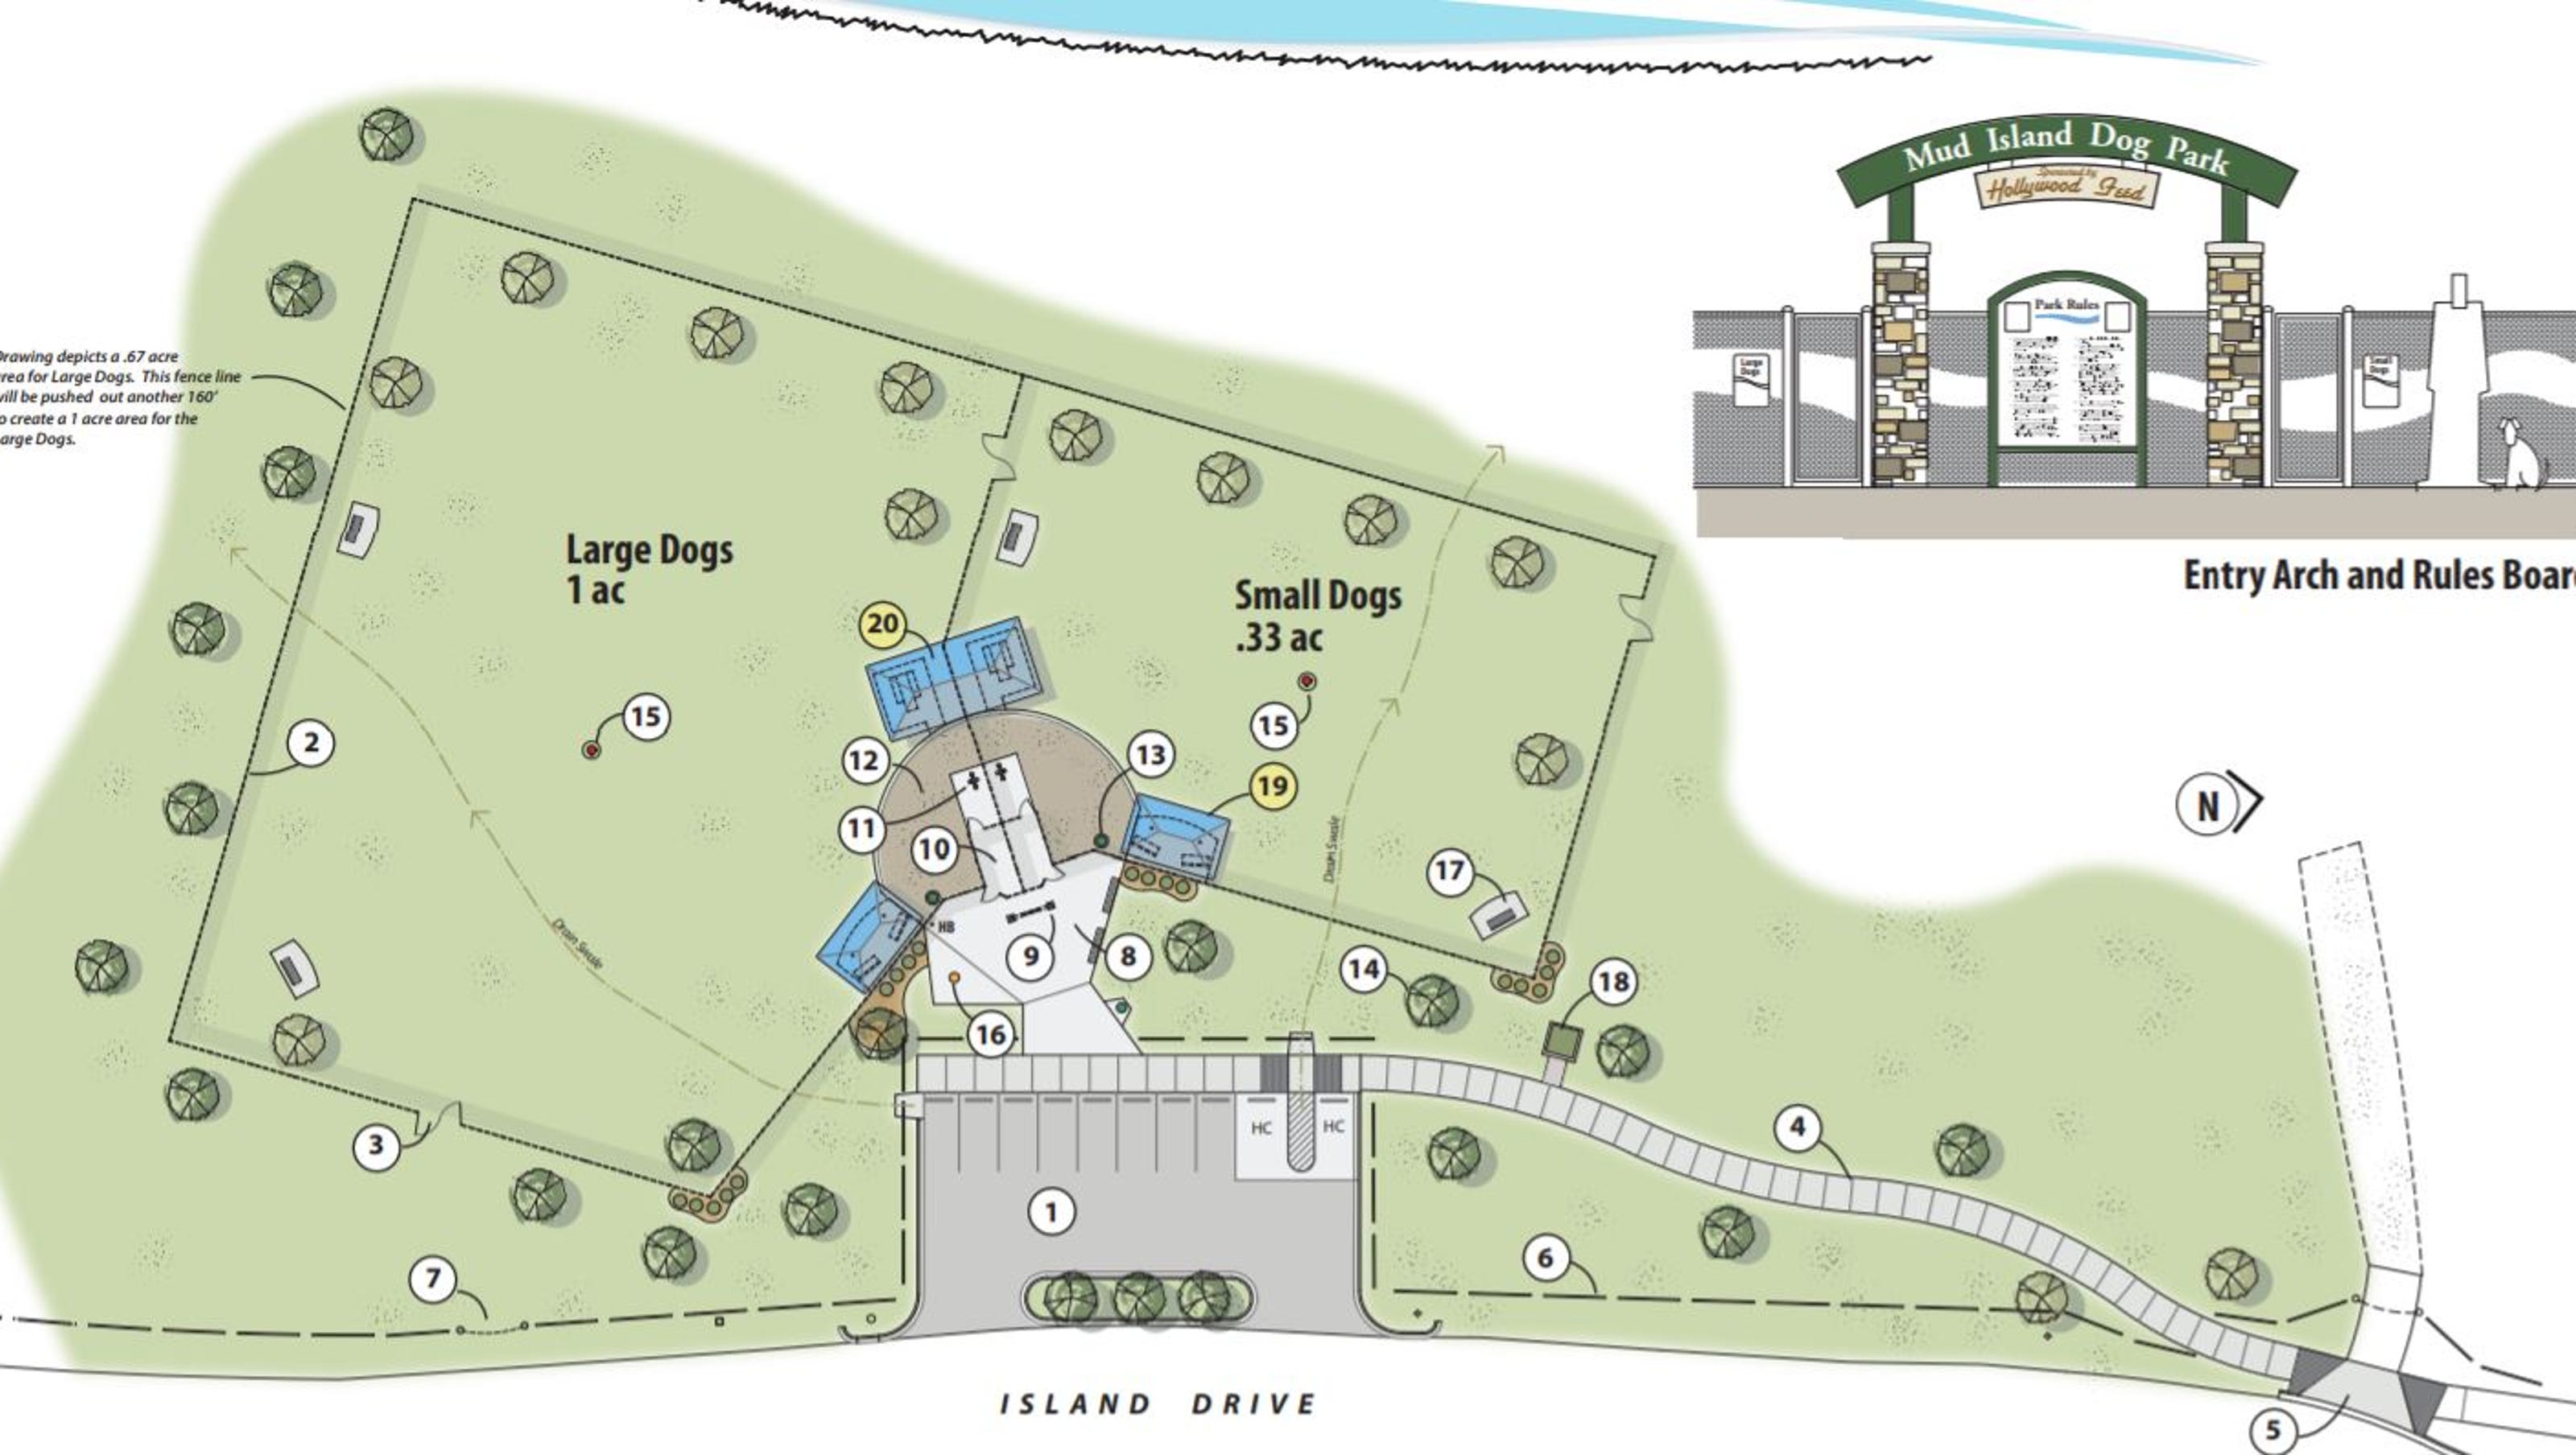 Mud Island Dog Park Being Constructed